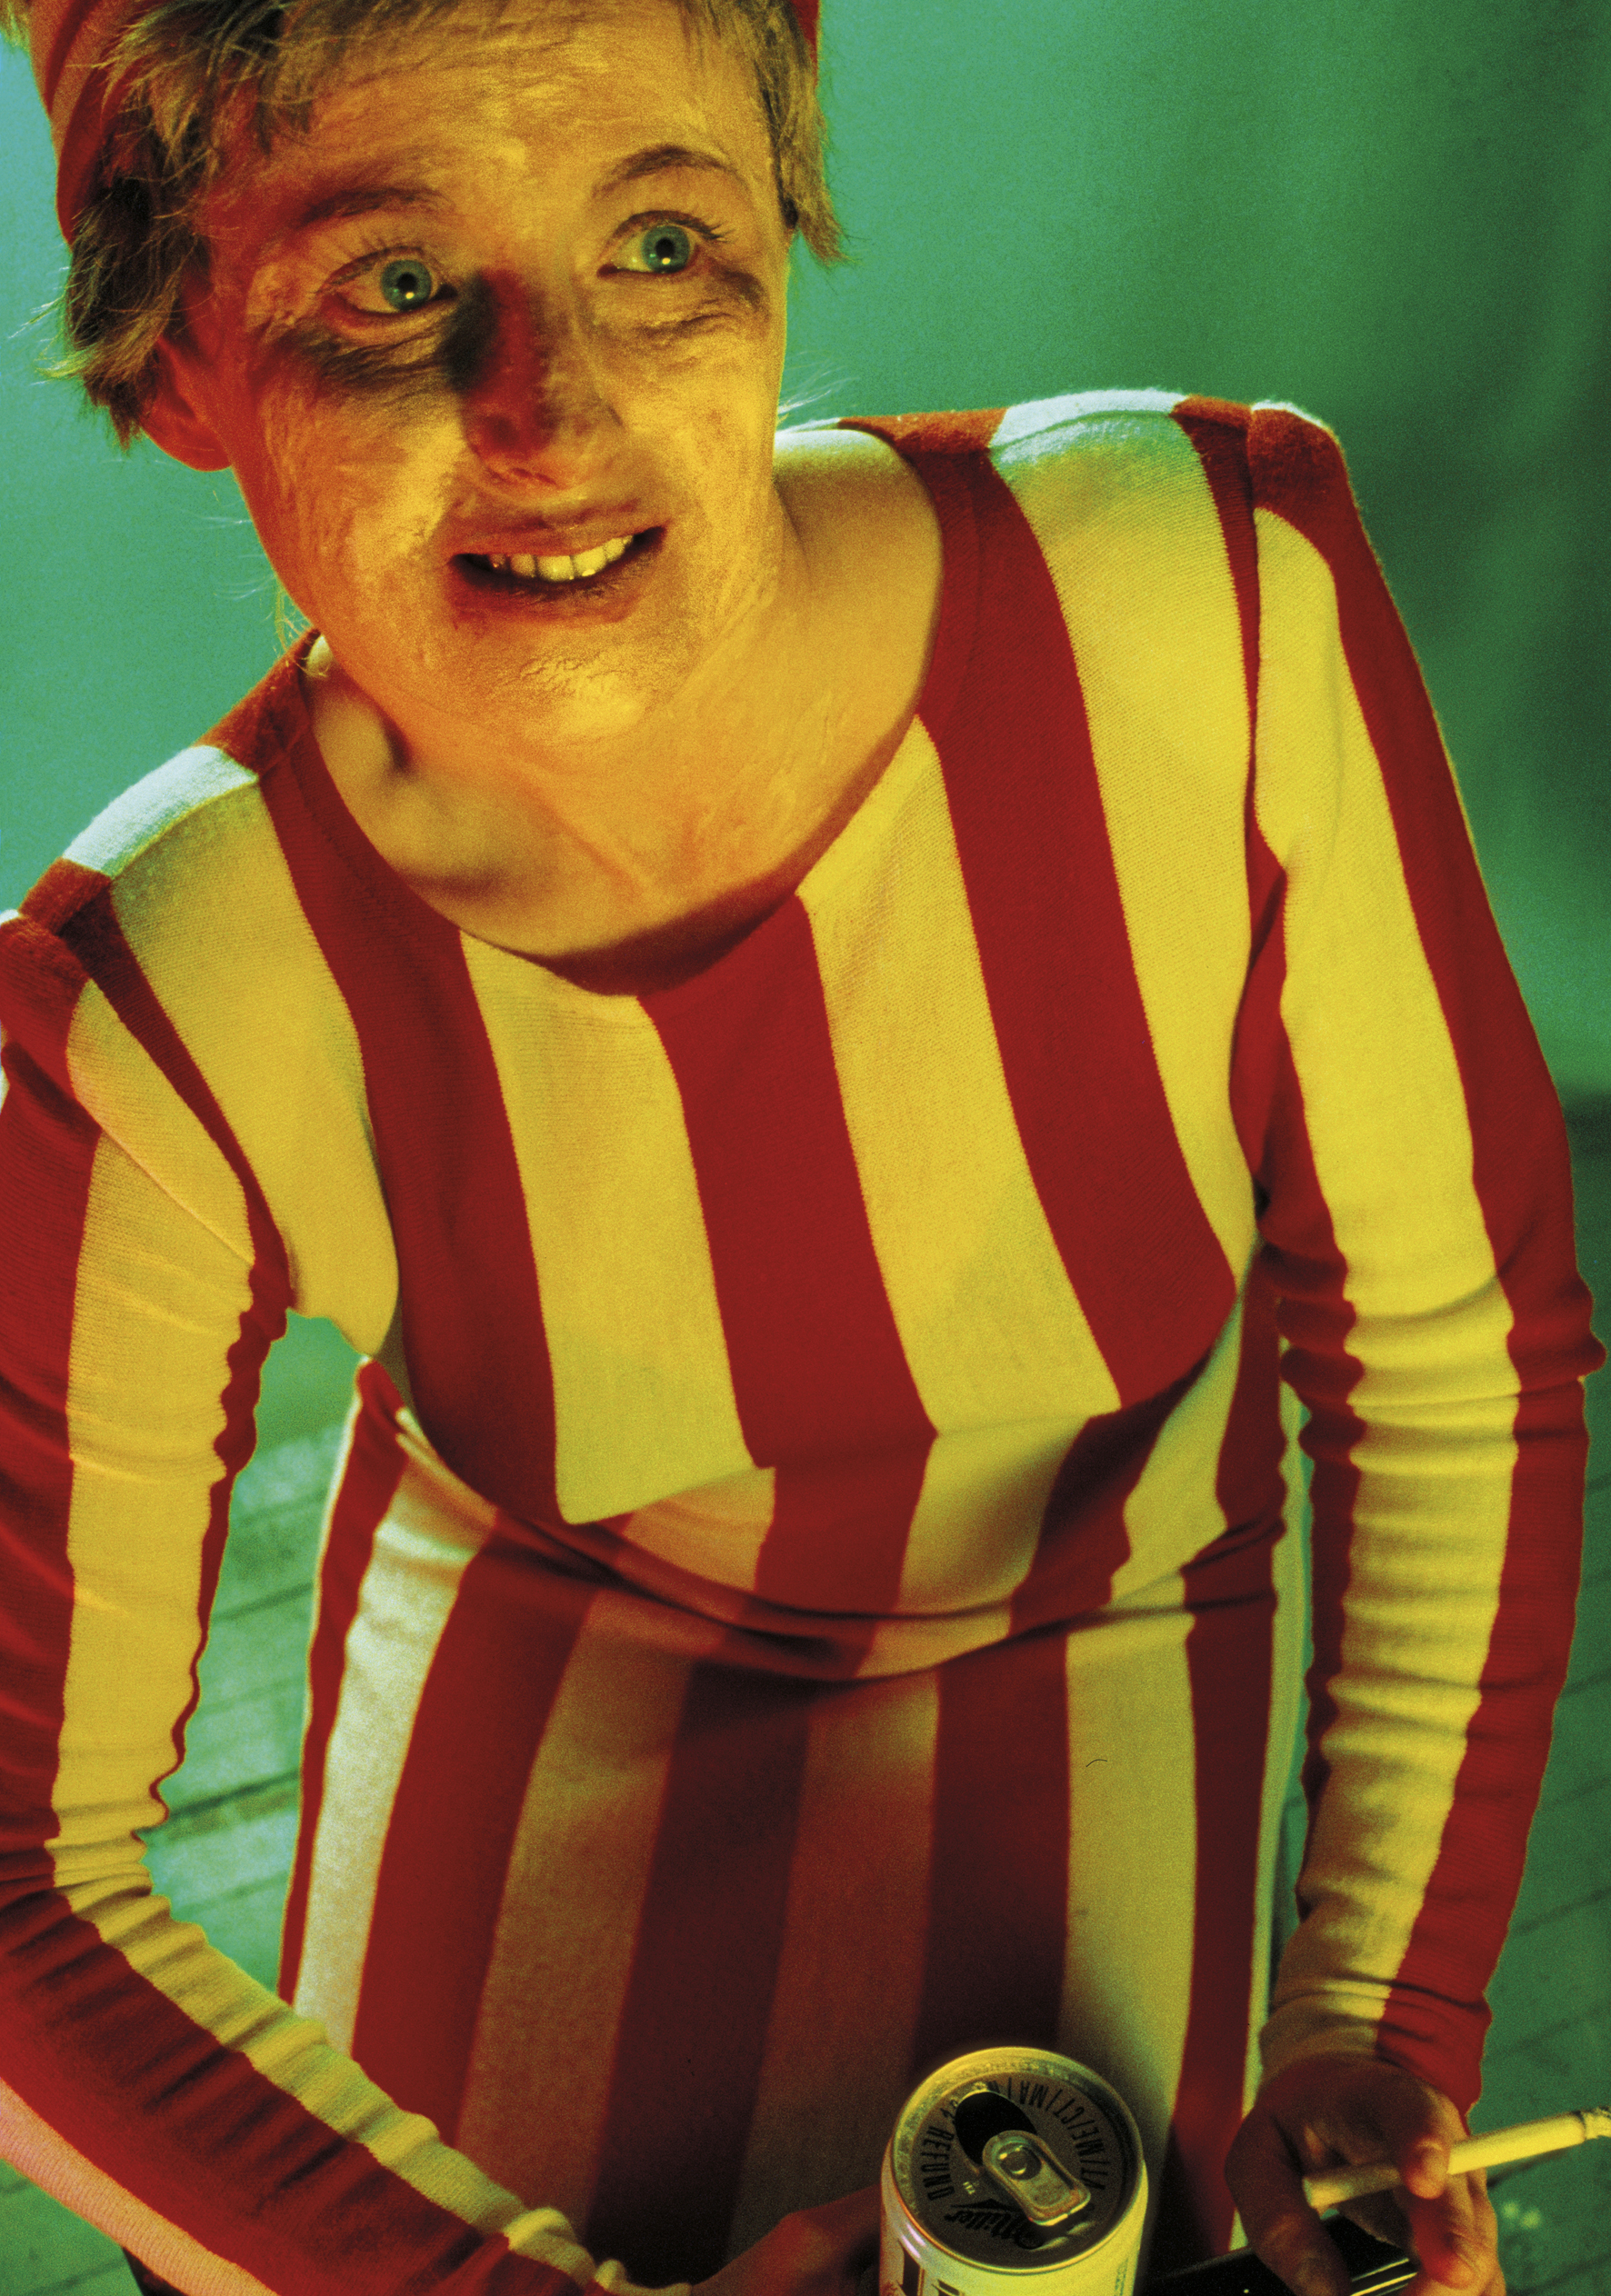 Untitled #228 - Cindy Sherman | The Broad